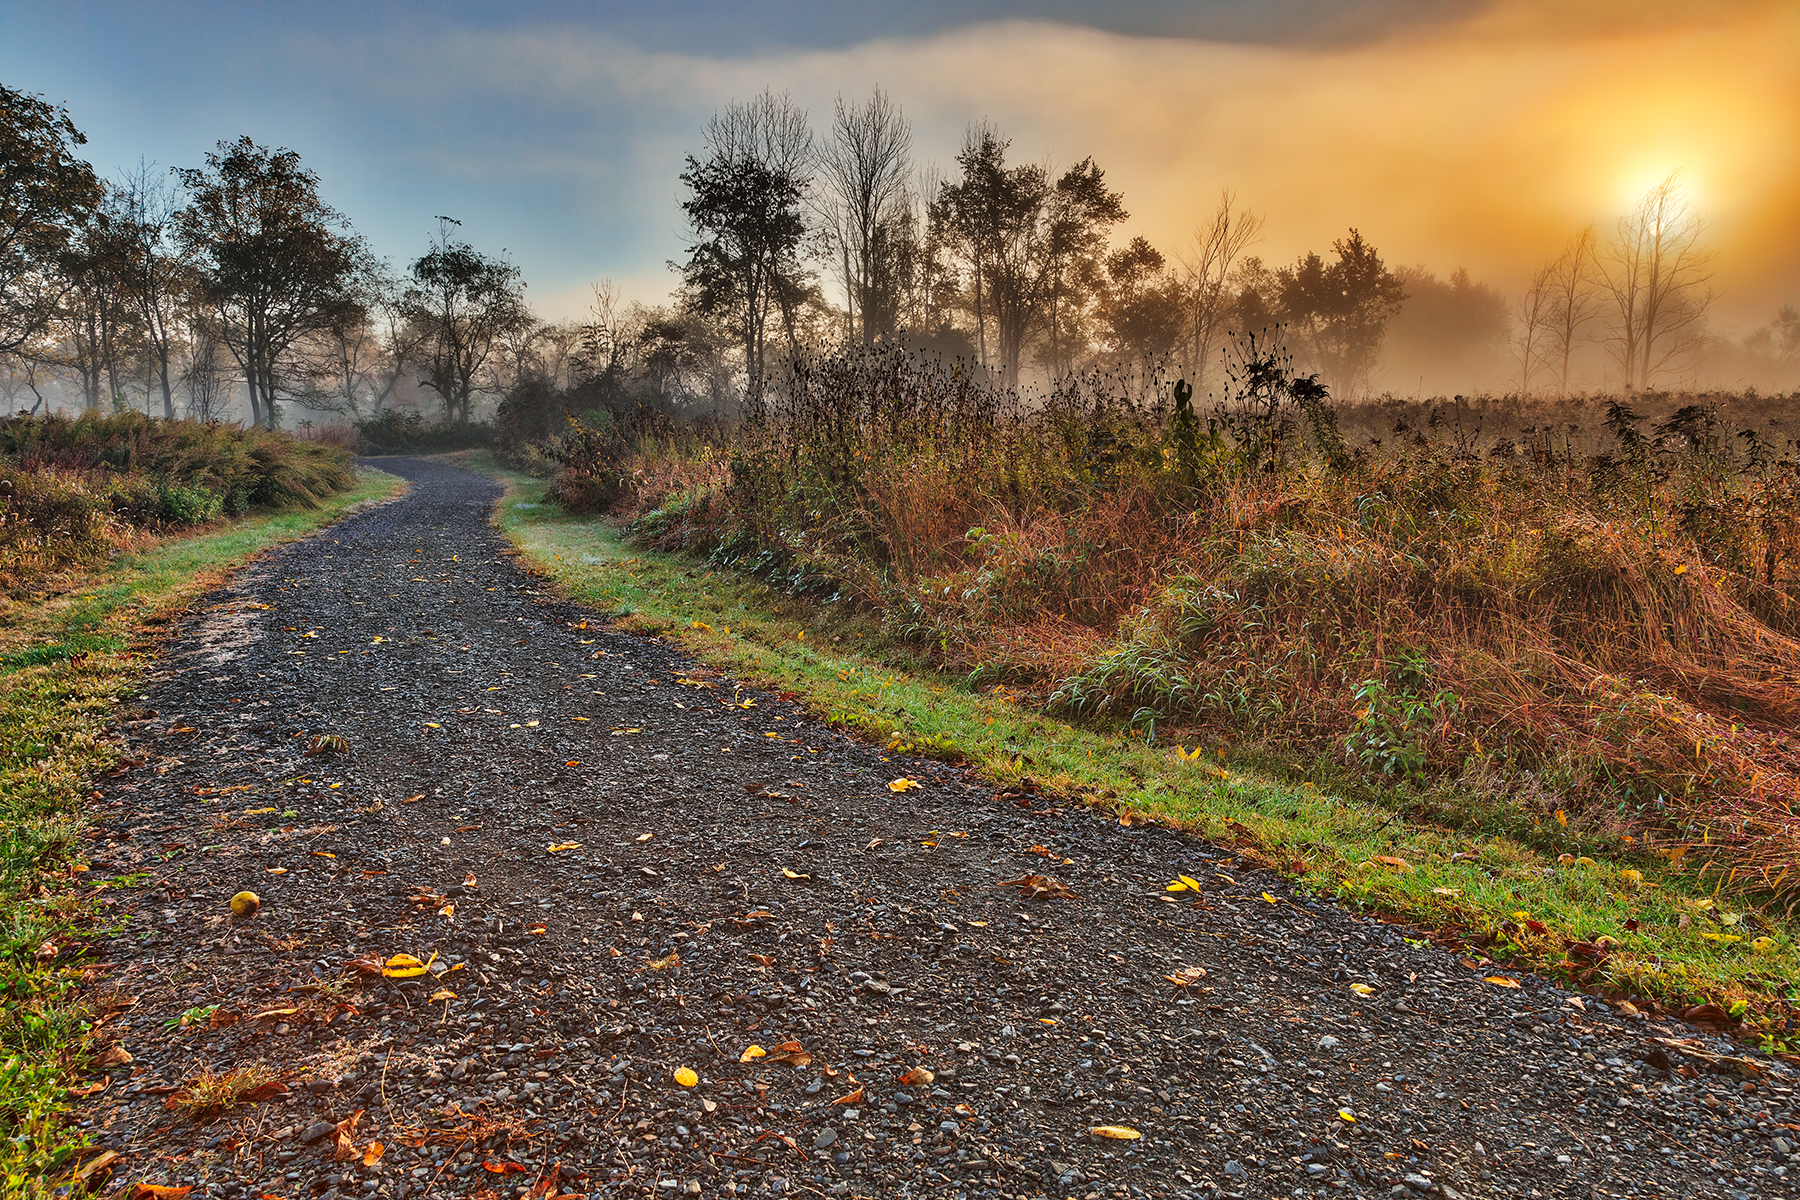 Misty mcdade sunrise - hdr photo